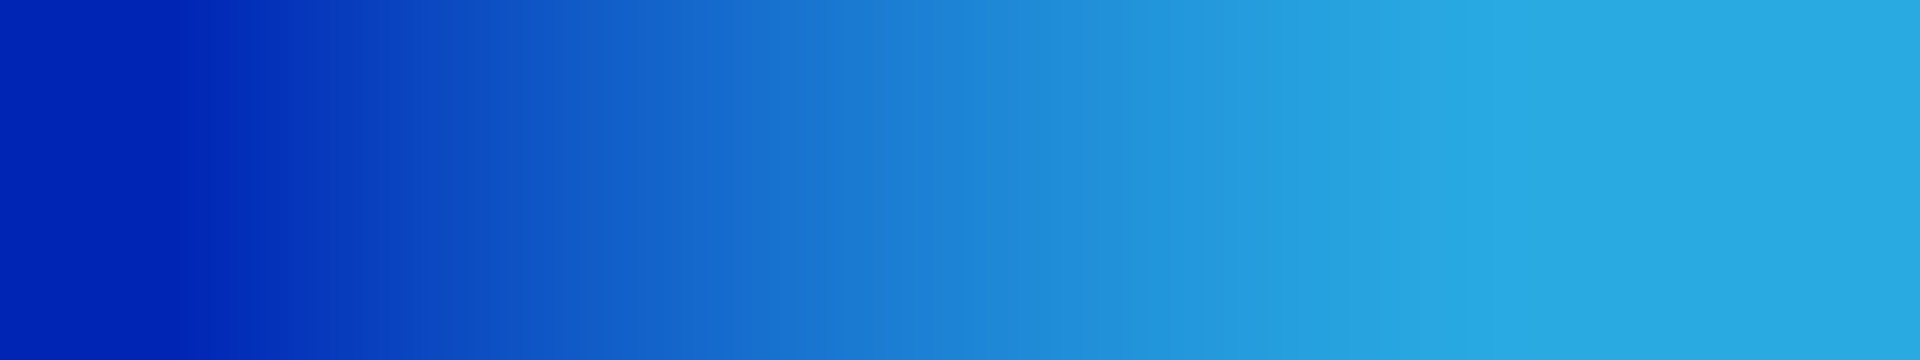 BLUE-GRADIENT-STRIP.png